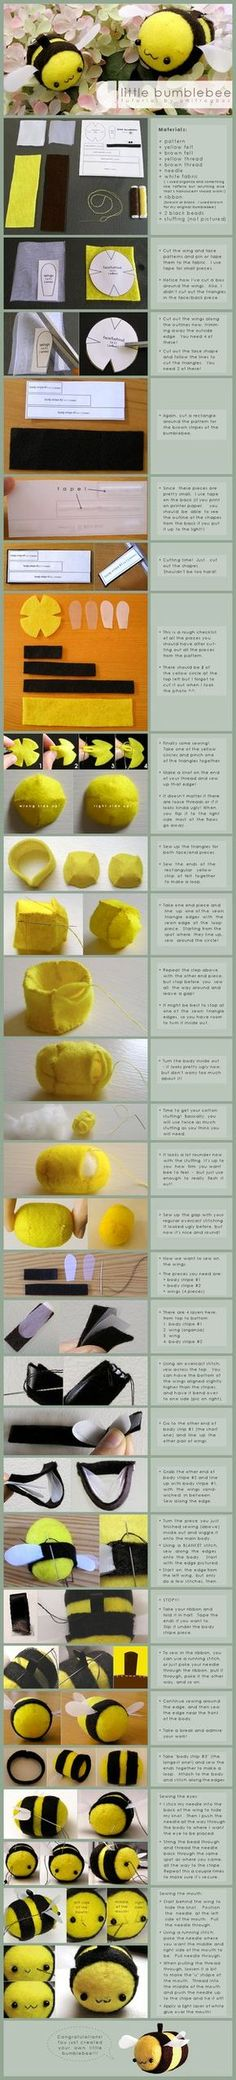 Mazza a tiny bumble bee little bumblebee: tutorial by ~onifrogbox on deviantART Plushie Patterns, Felt Patterns, Sewing Patterns, Softies, Plushies, Sewing Toys, Sewing Crafts, Sewing Projects, Bee Crafts